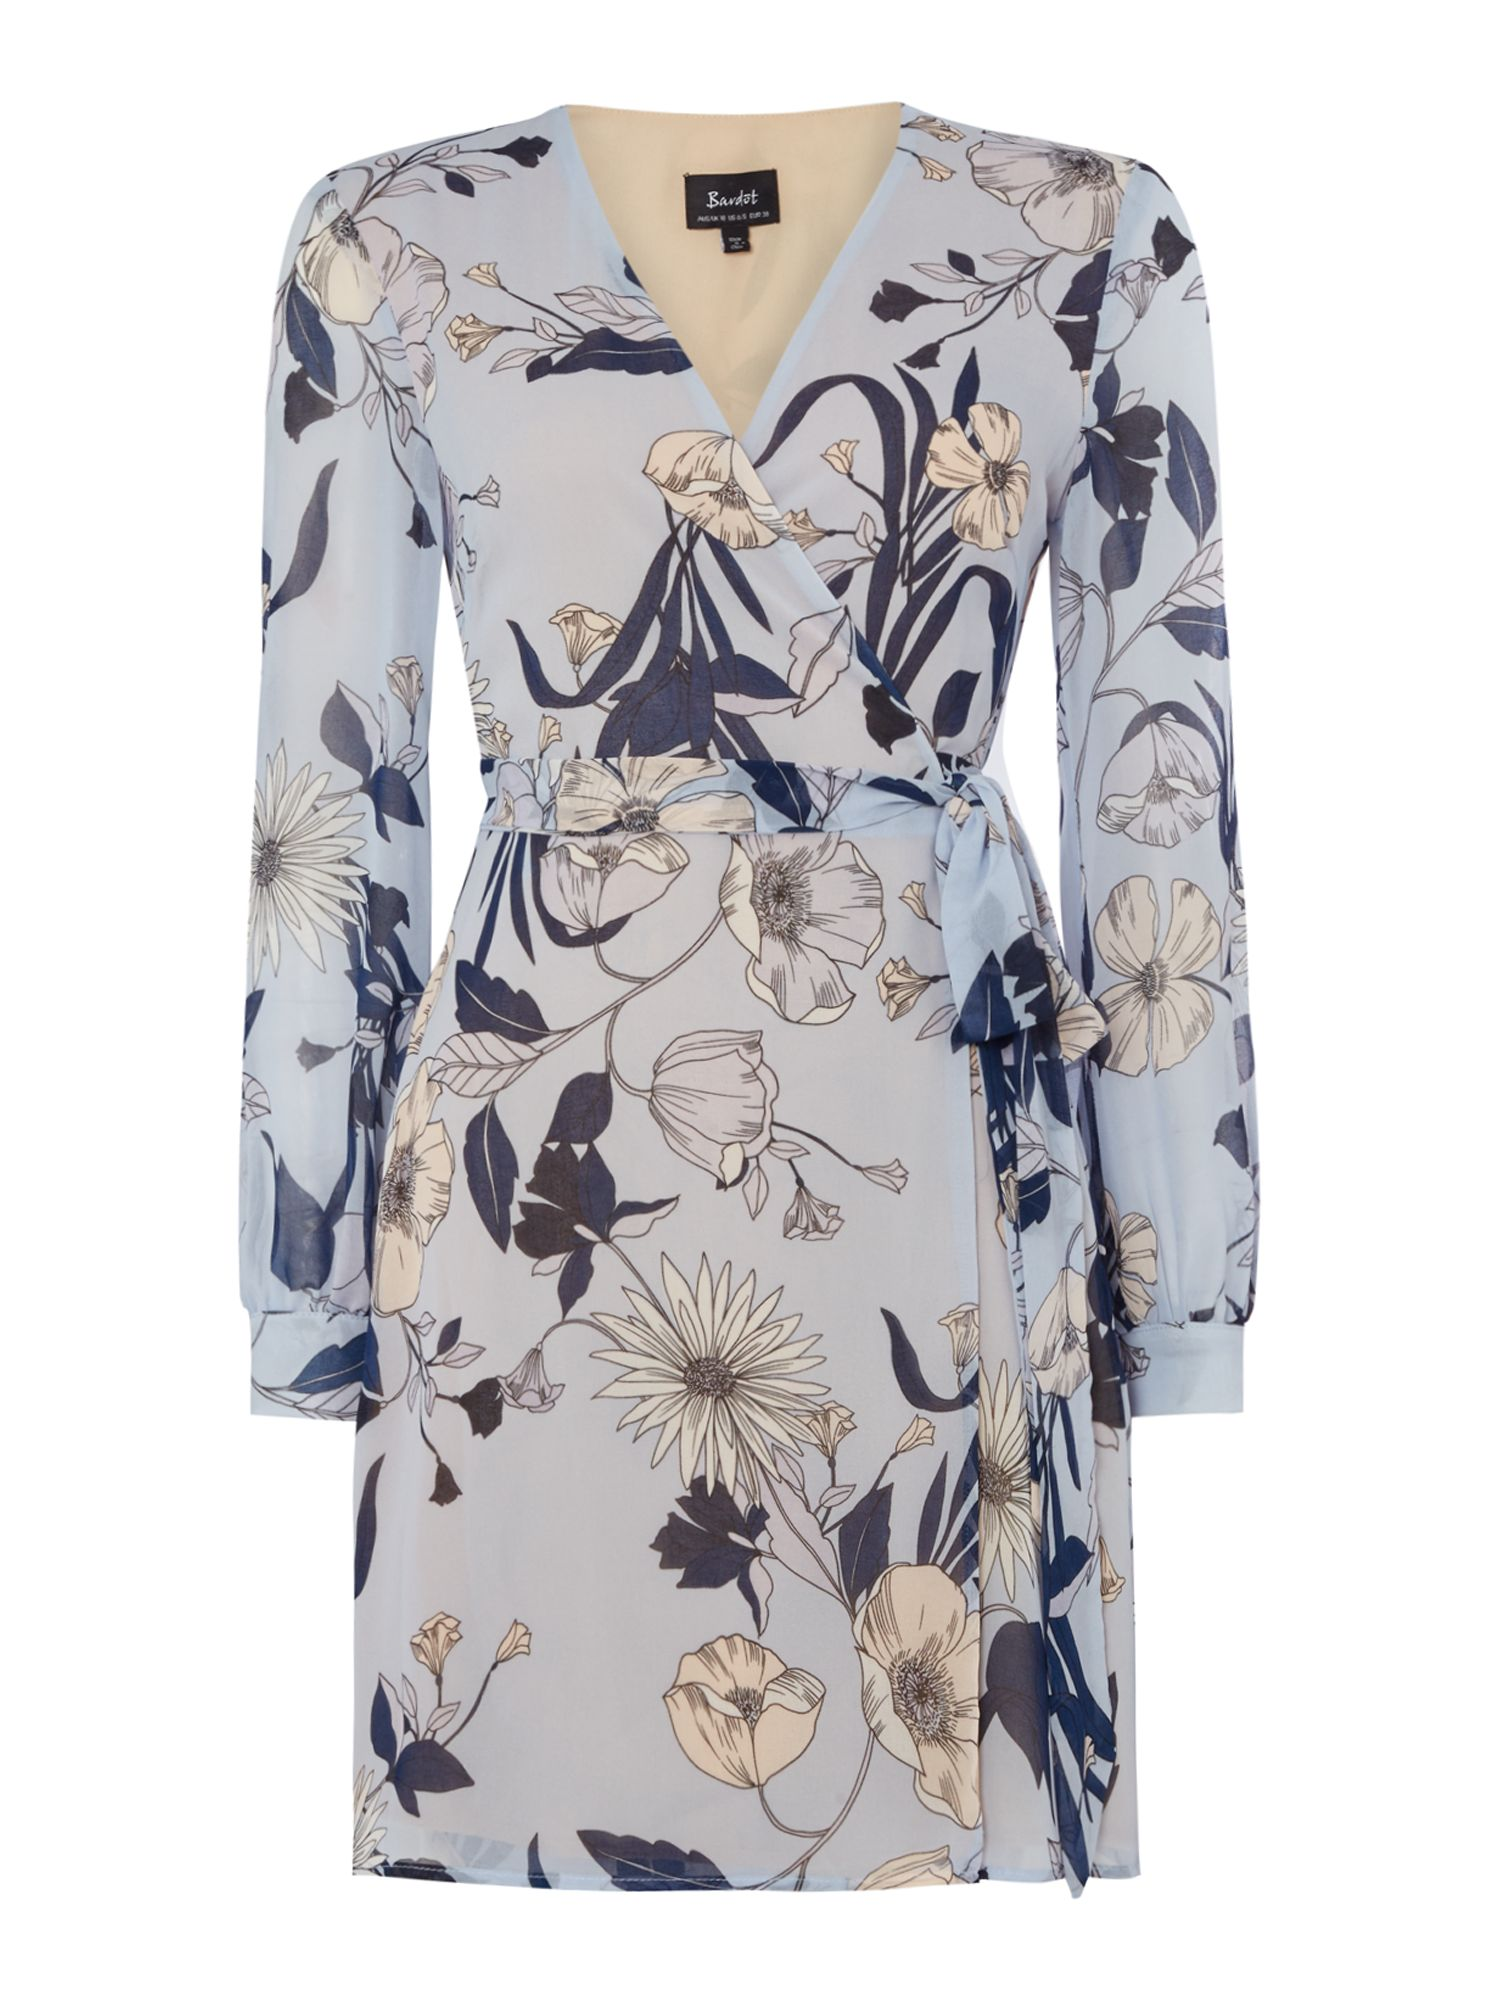 Bardot Floral V Neck Long Sleeved Dress, Multi-Coloured